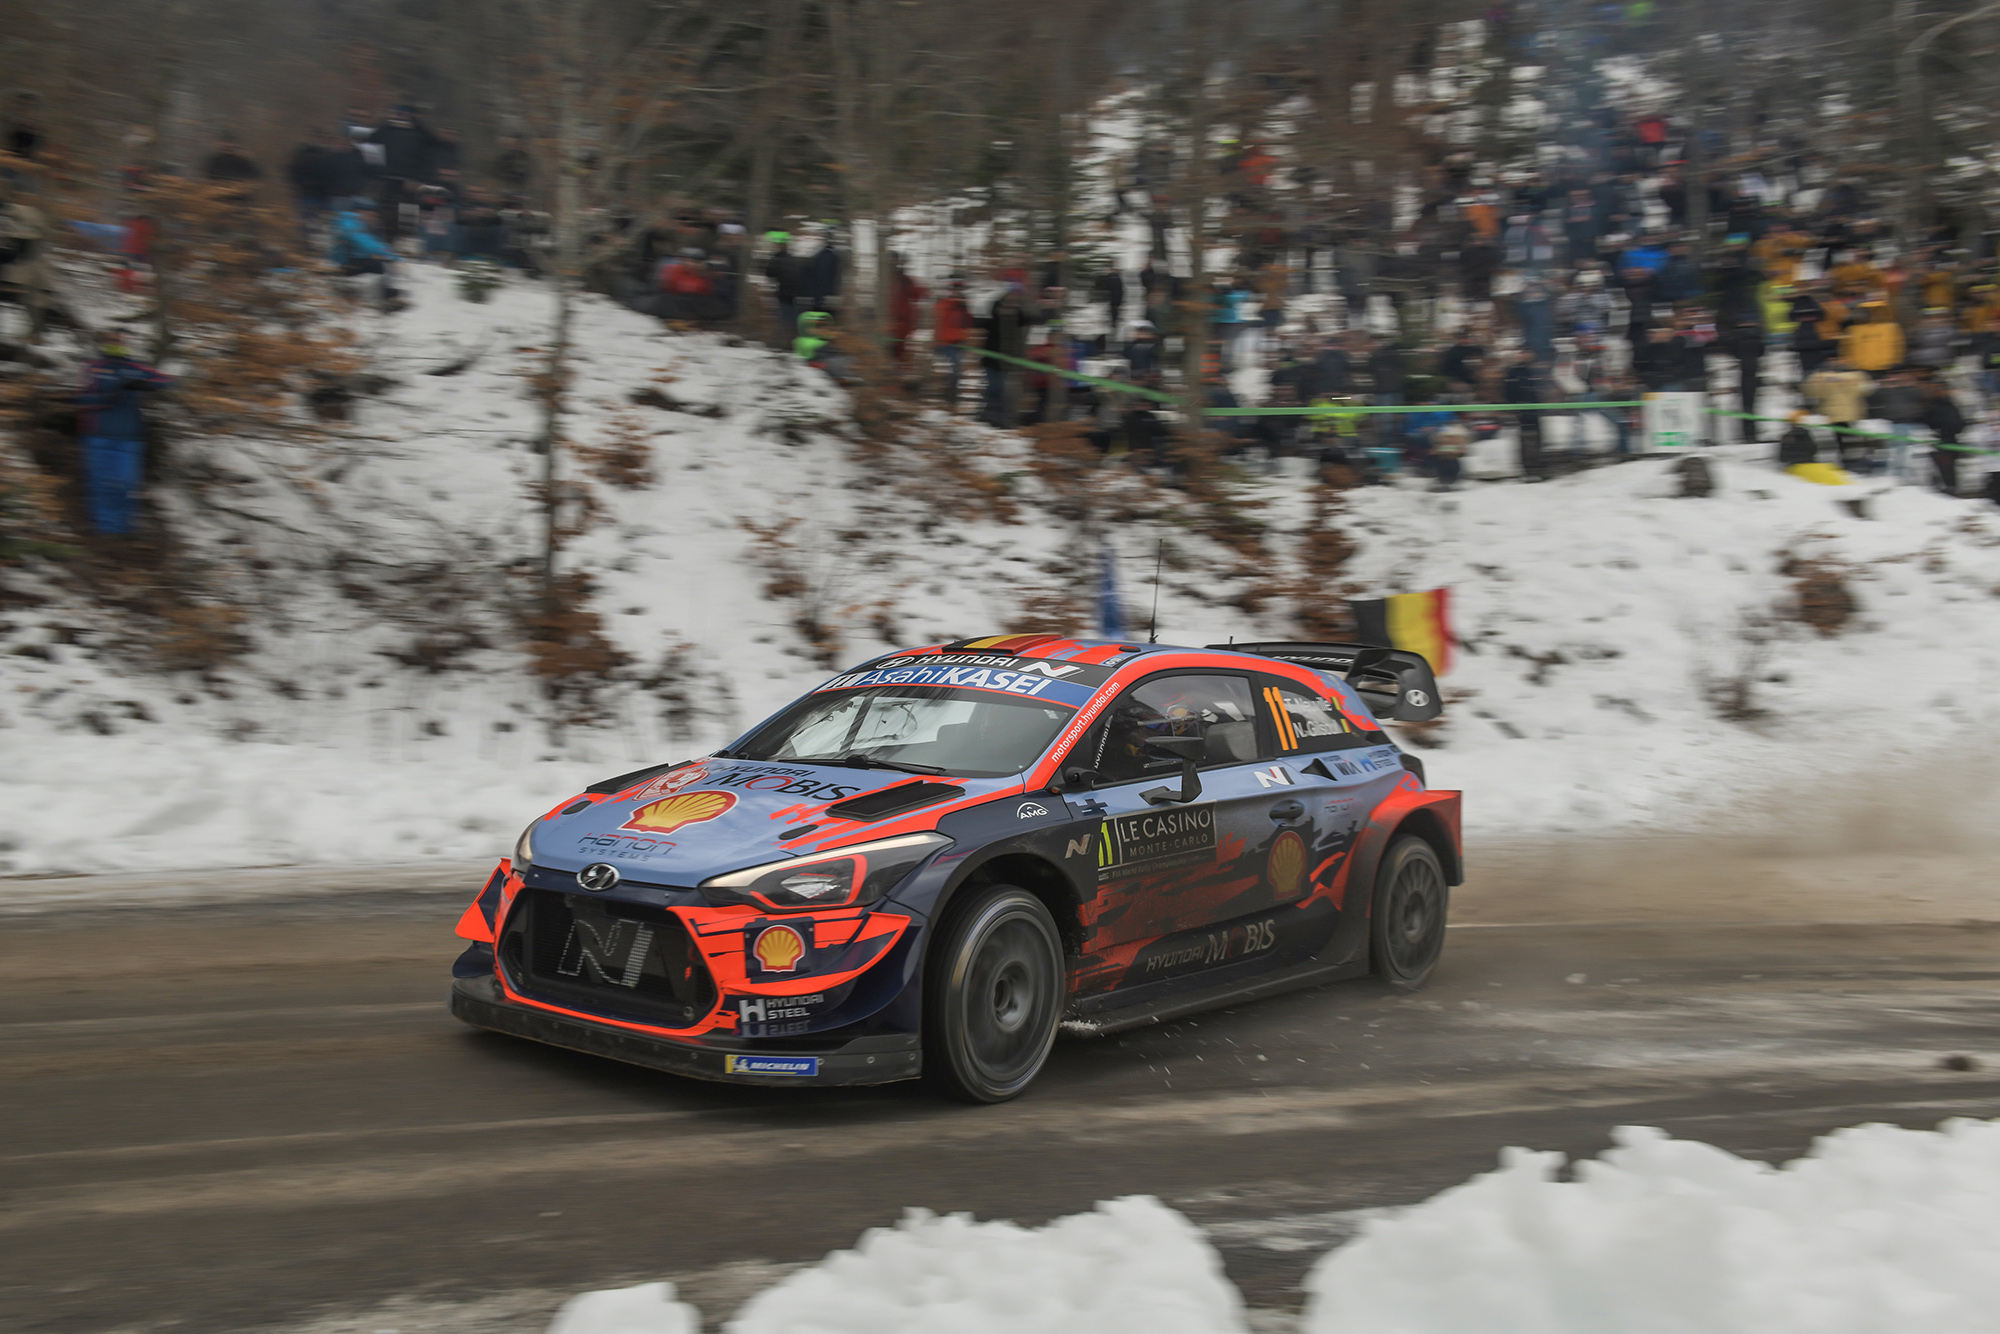 Thierry Neuville drives through the slush on Saturday of the 2020 Monte Carlo Rally